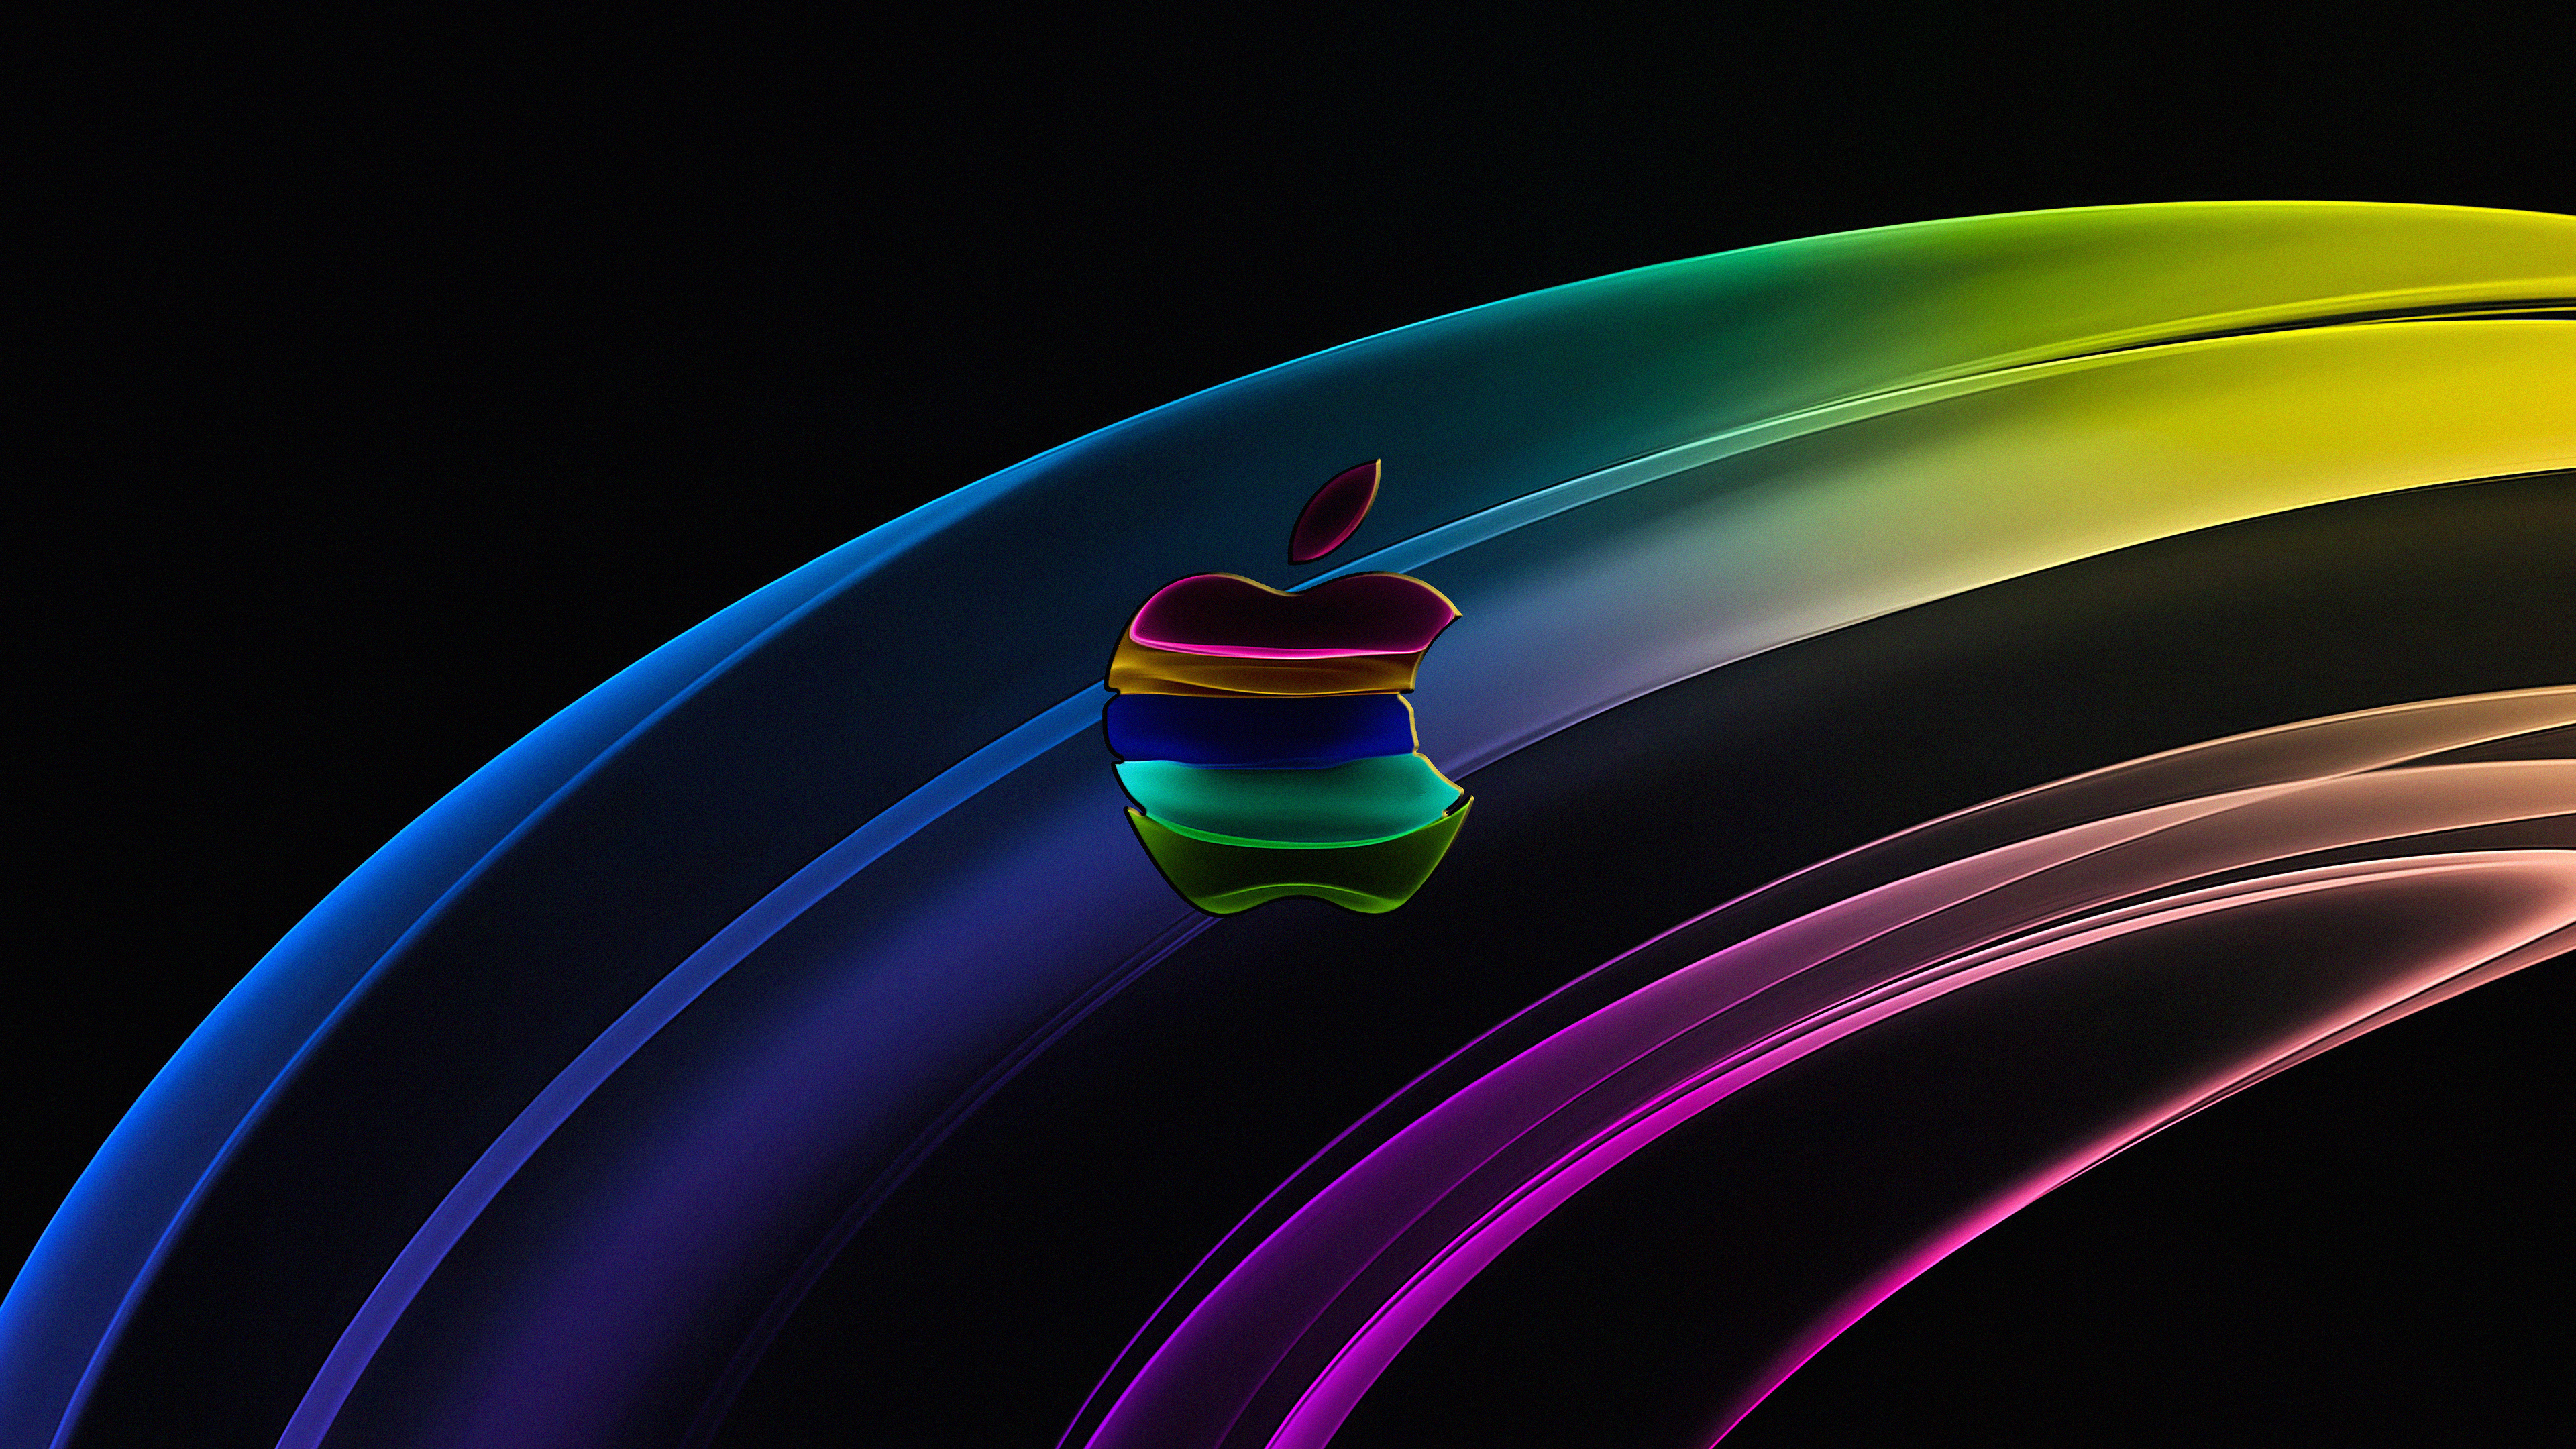 3840x2160 Iphone 11 Event 4k HD 4k Wallpapers, Images ...